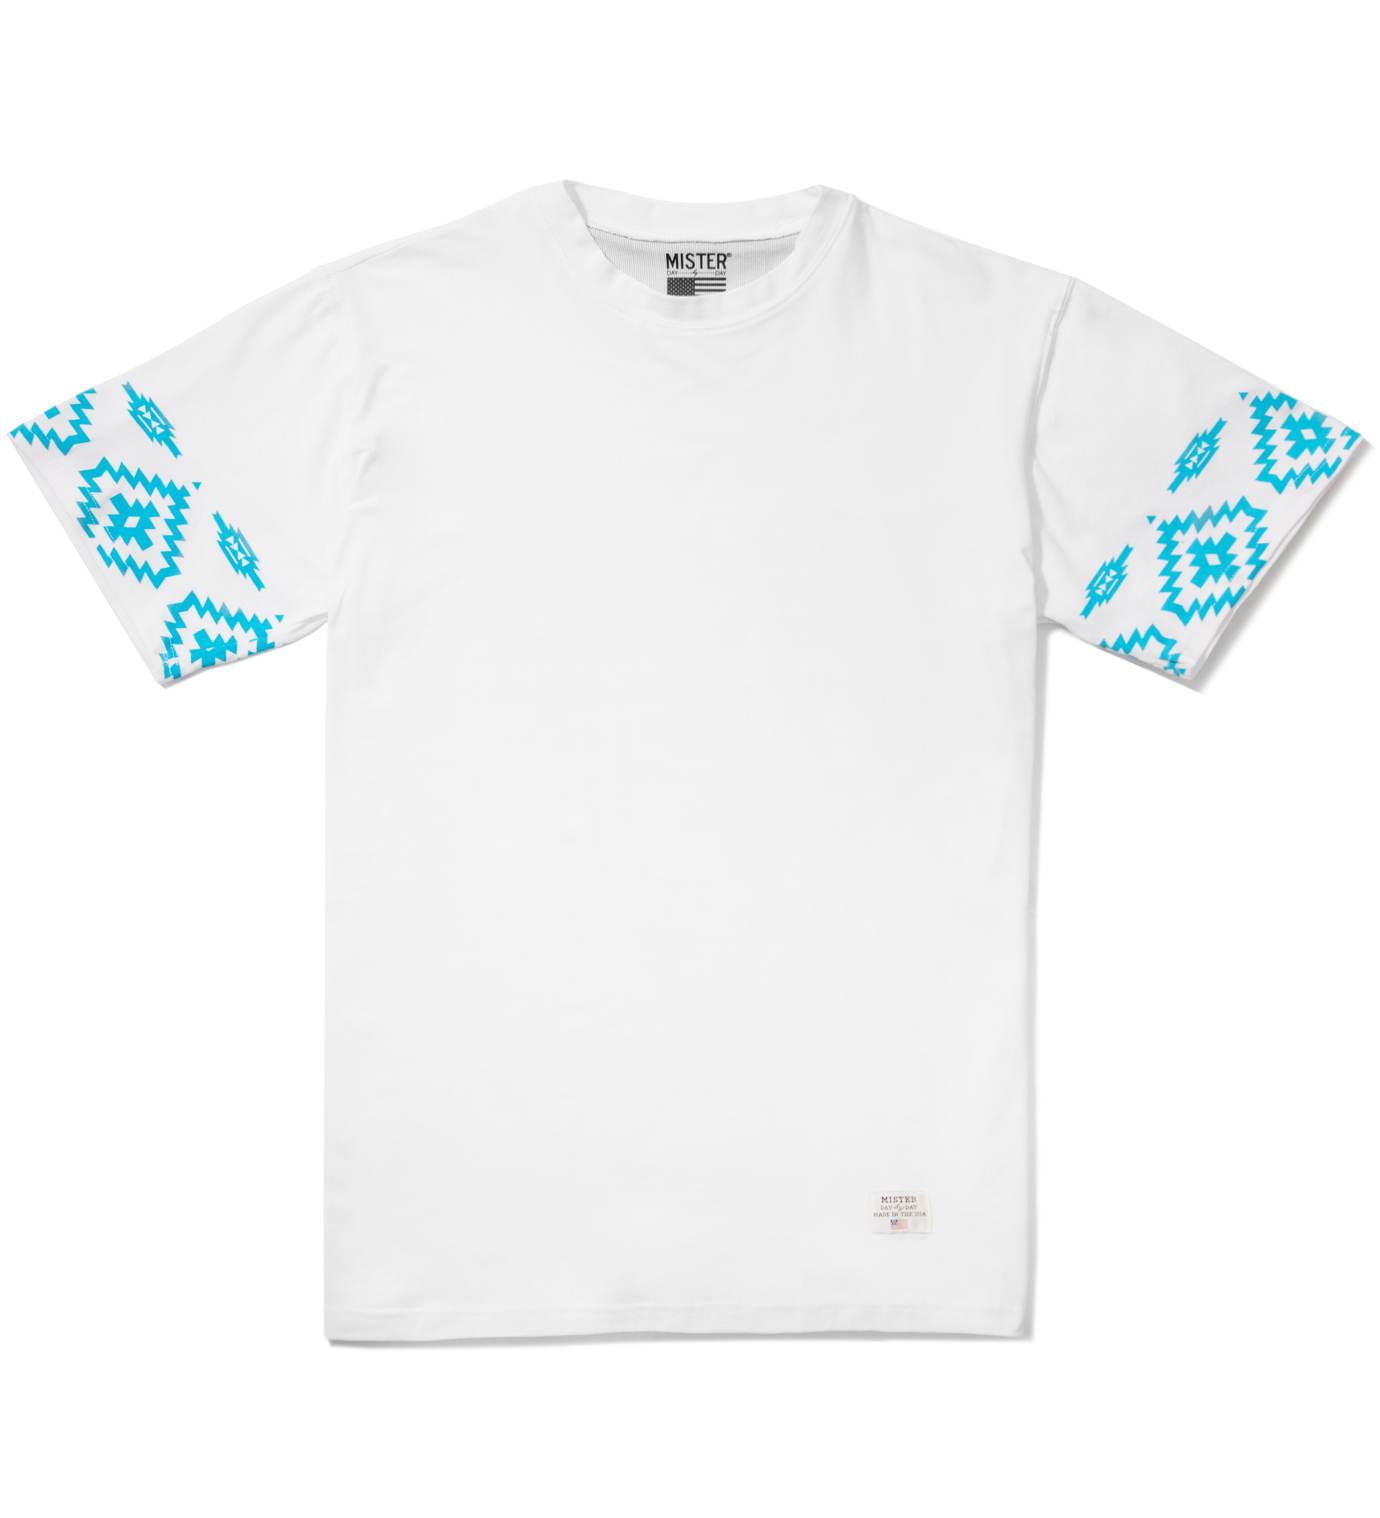 Mister White/Turquoise Print Mr. Native Immediate T-Shirt